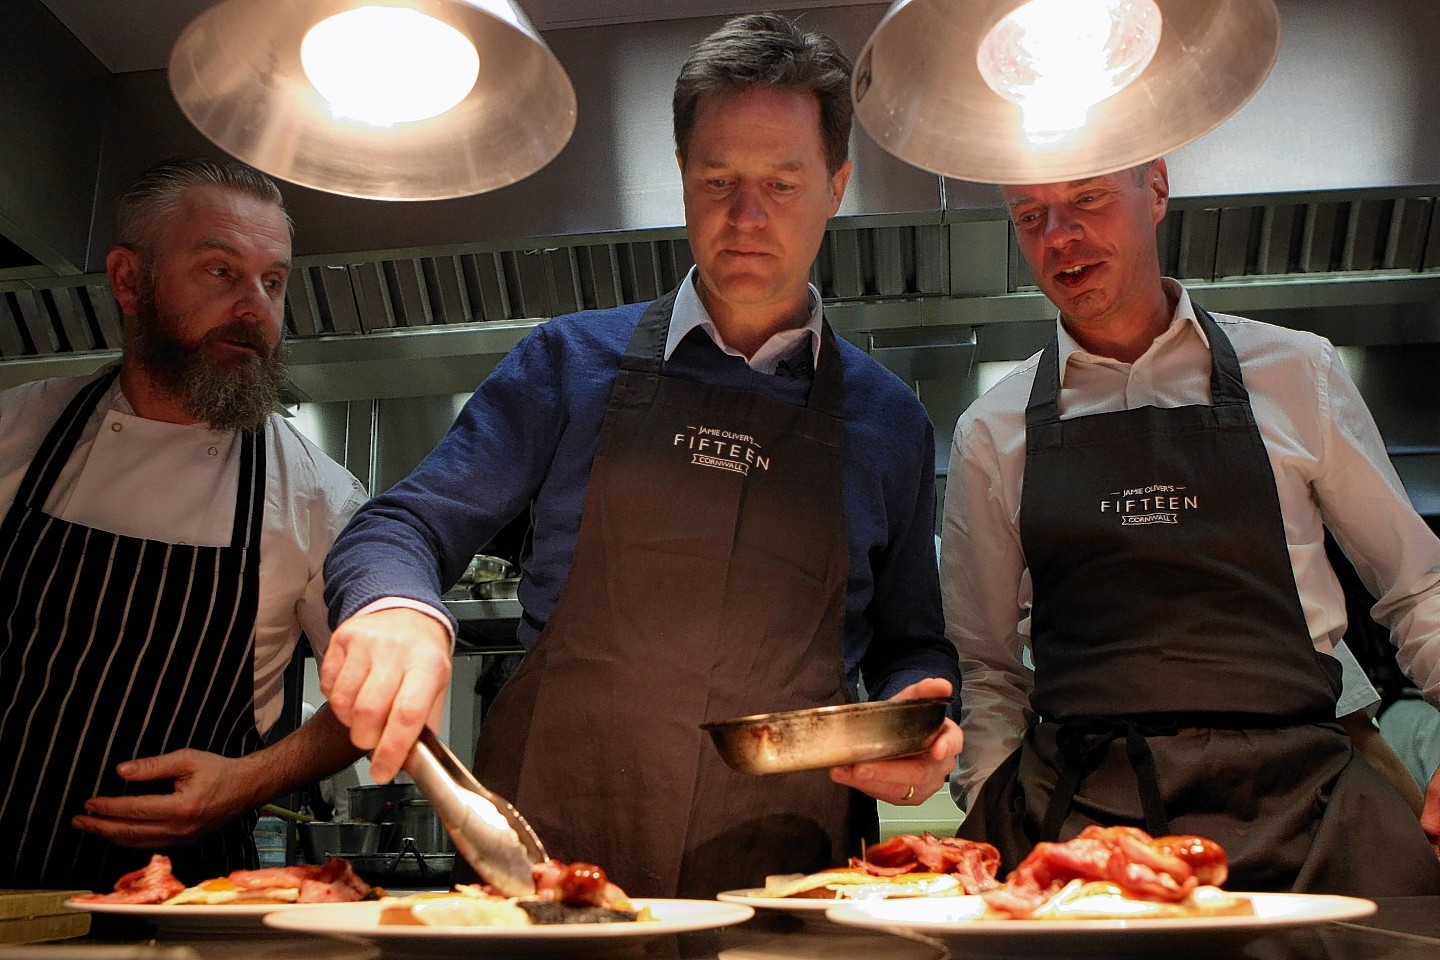 Liberal Democrats Party leader Nick Clegg  serves breakfast at Jamie Oliver's Fiftheen restaurant in Newquay, Cornwall